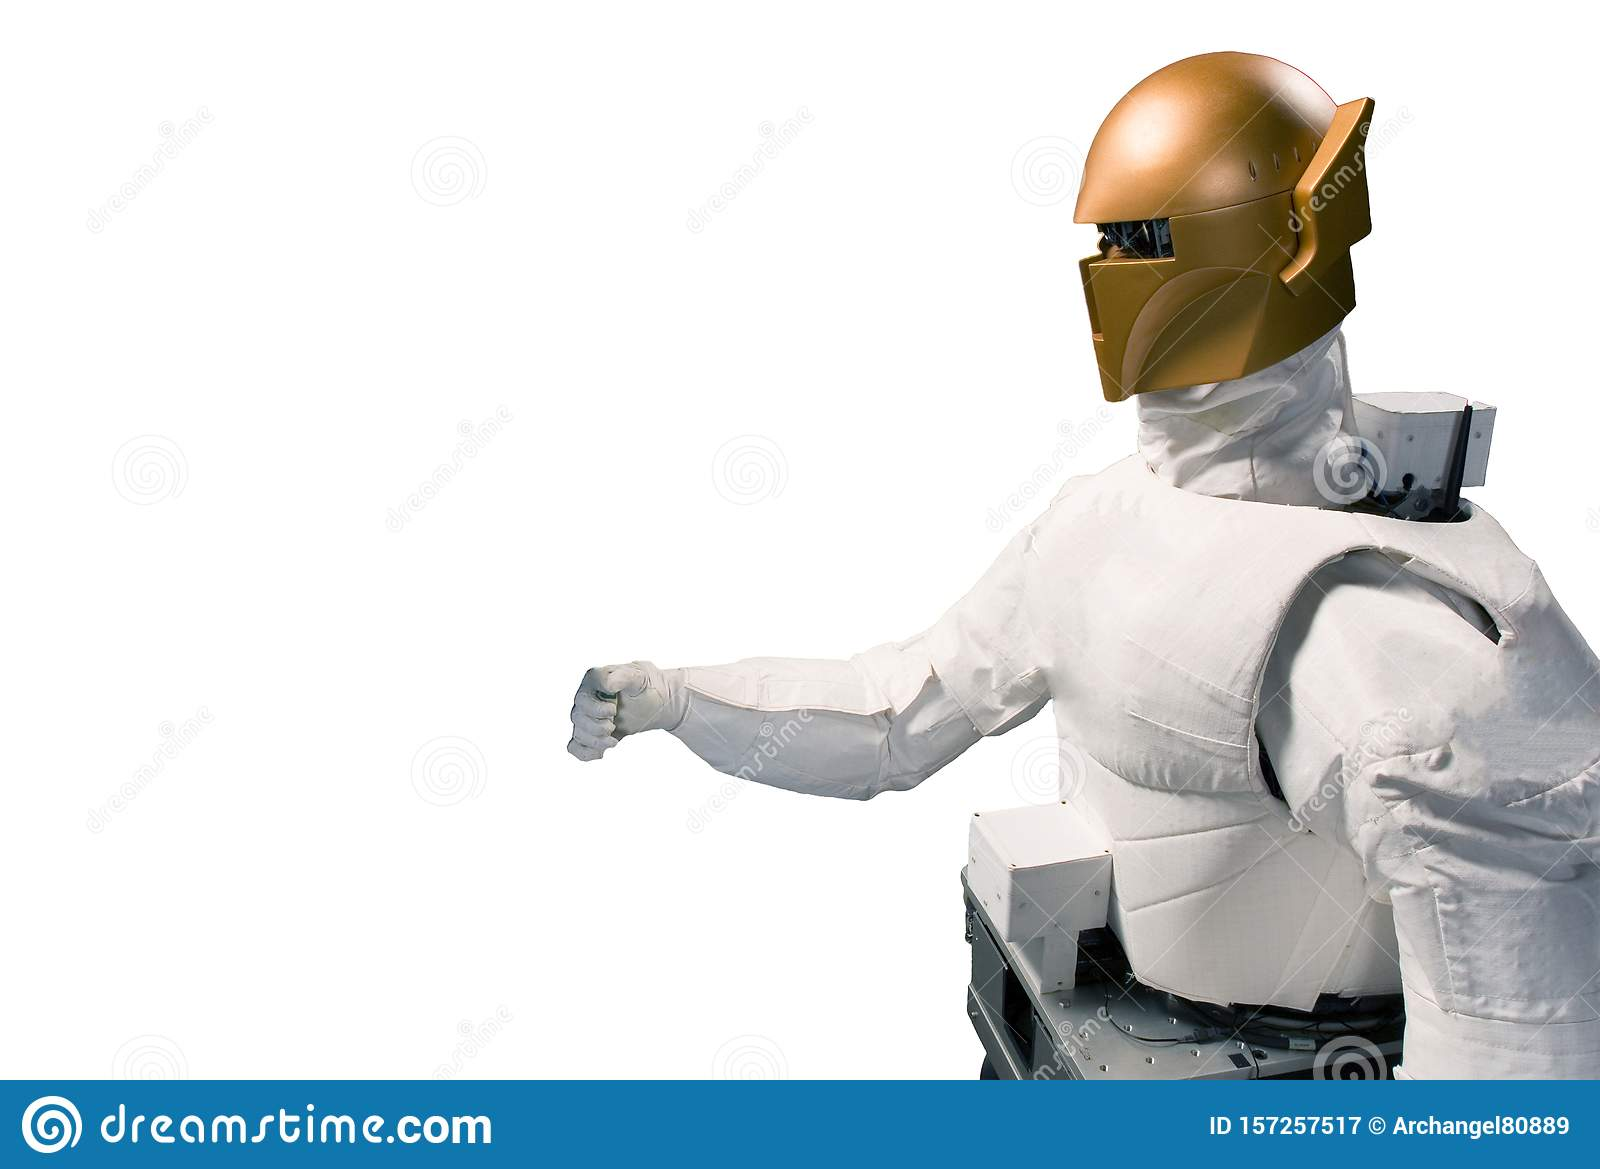 Robot astronaut isolated on a white background. Elements of this image were furnished by NASA